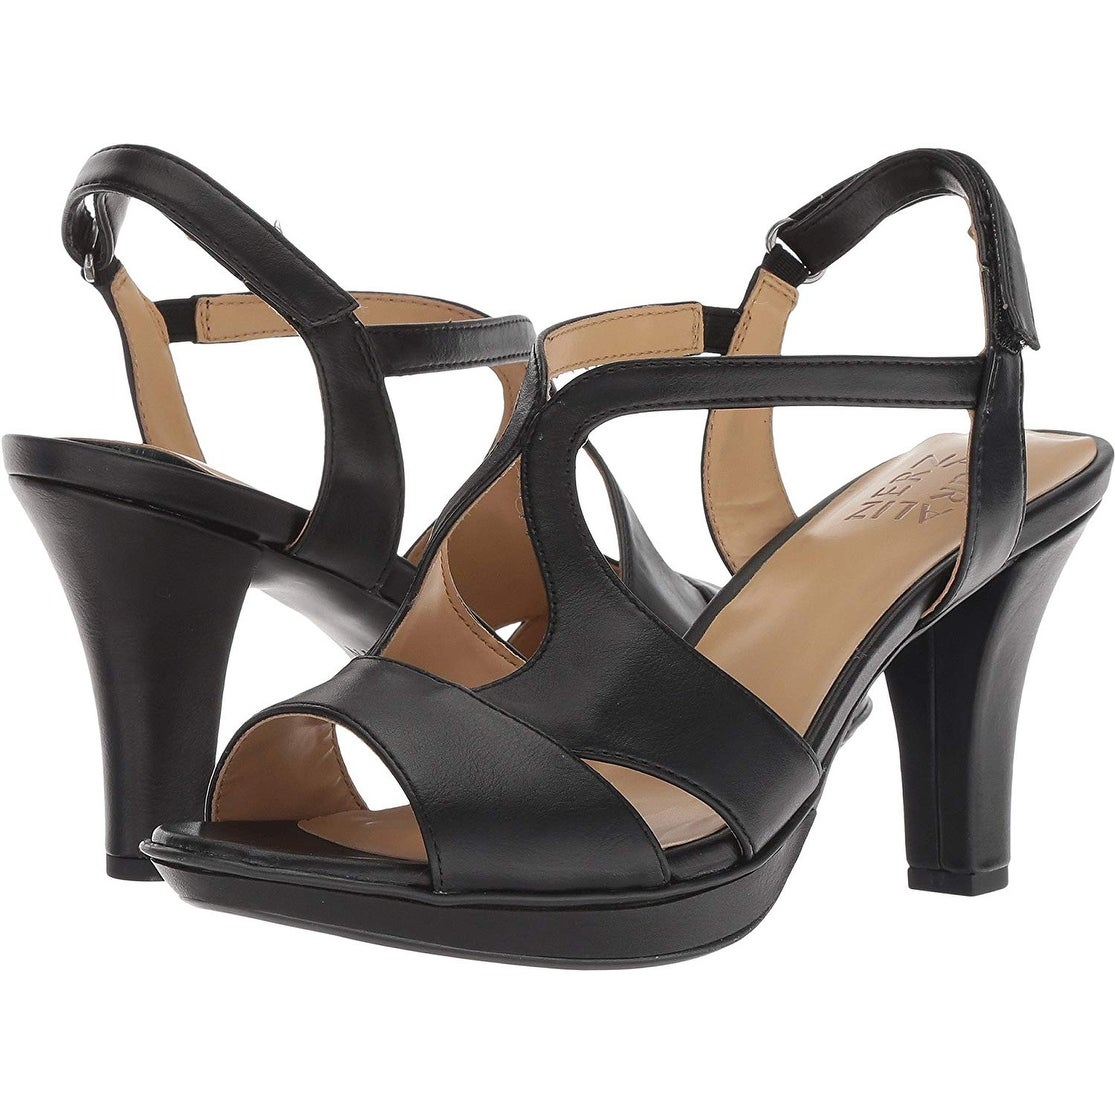 e7f55d952786 Buy Size 5 Naturalizer Women s Sandals Online at Overstock